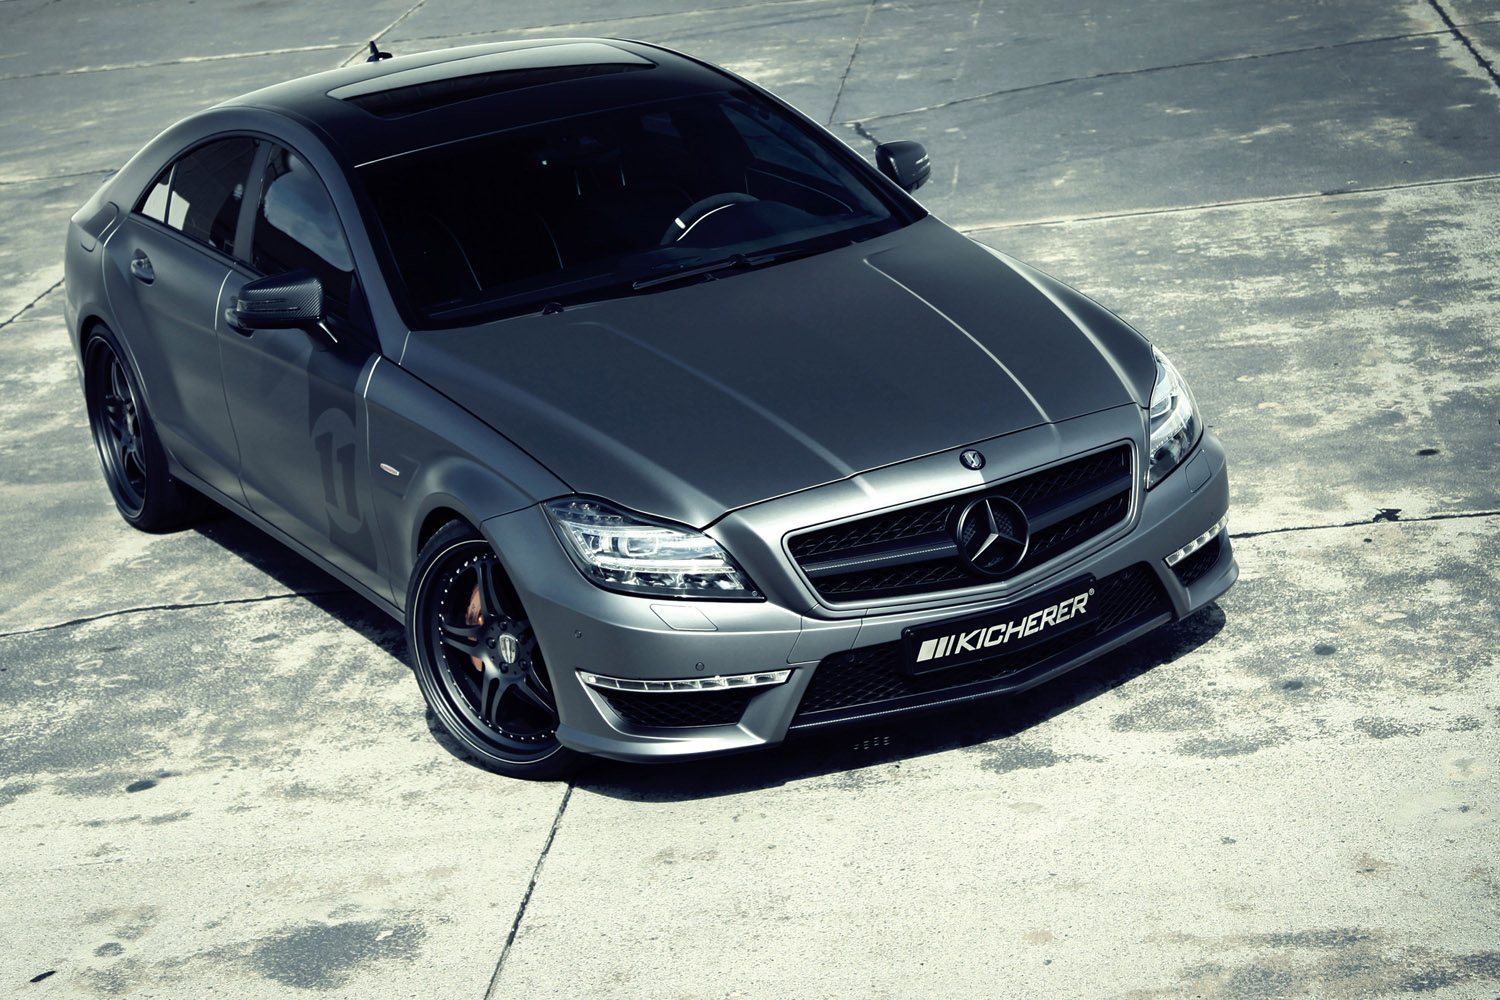 2013 kicherer mercedes benz cls 63 amg yachting cls tuning. Black Bedroom Furniture Sets. Home Design Ideas